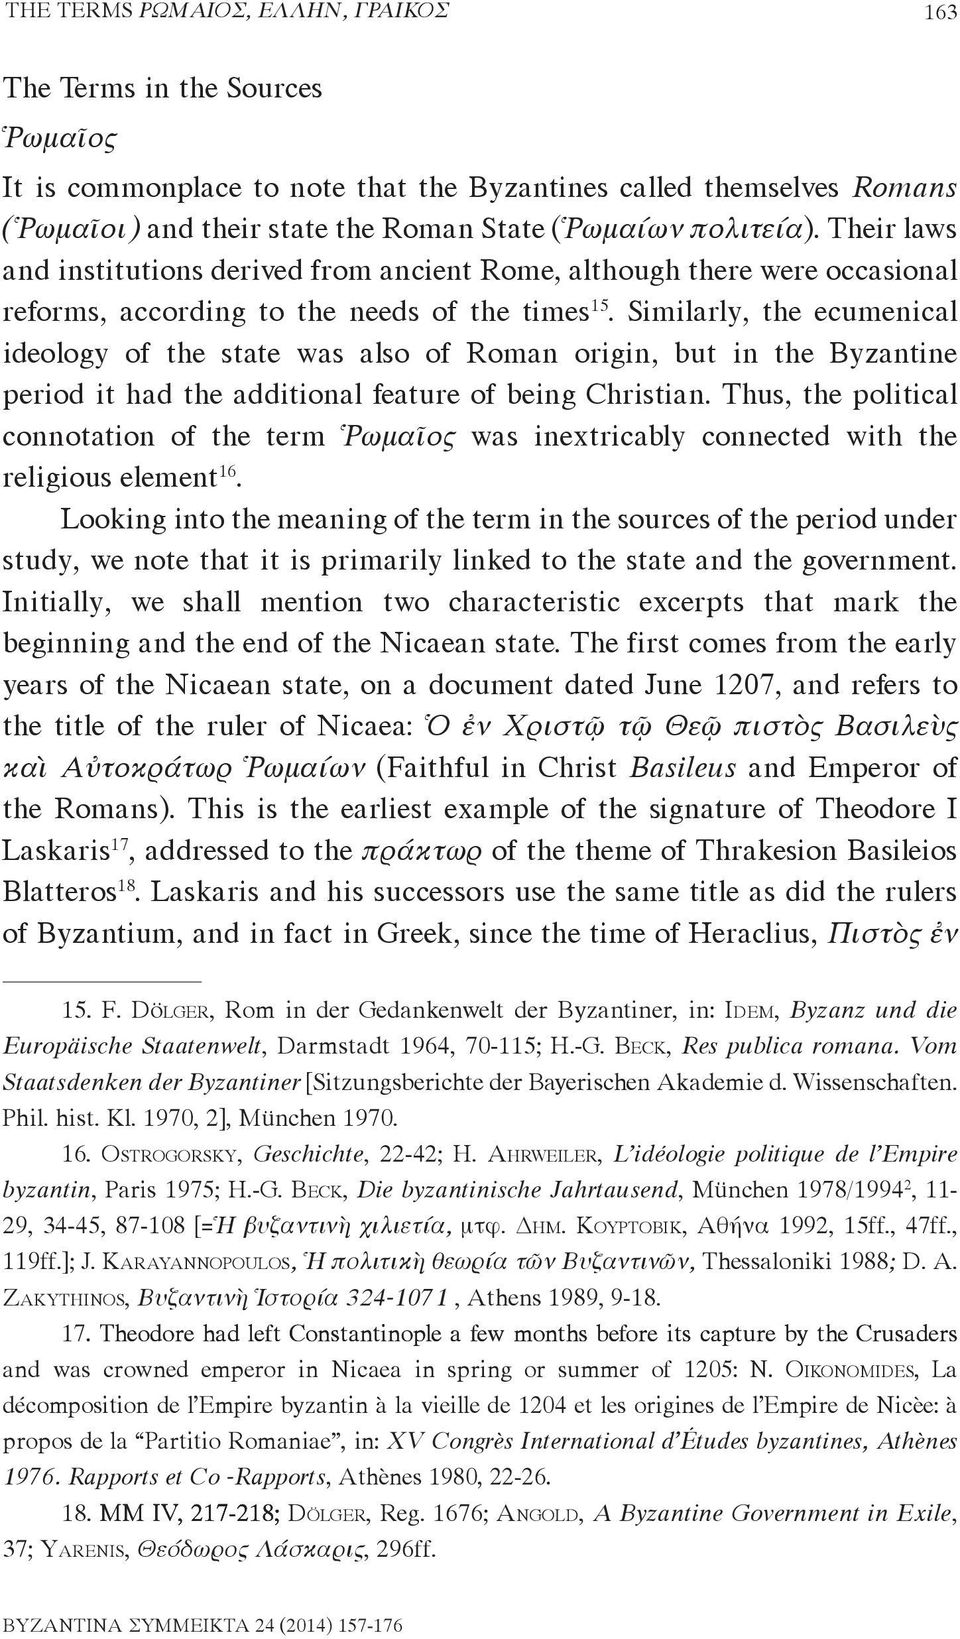 Similarly, the ecumenical ideology of the state was also of Roman origin, but in the Byzantine period it had the additional feature of being Christian.